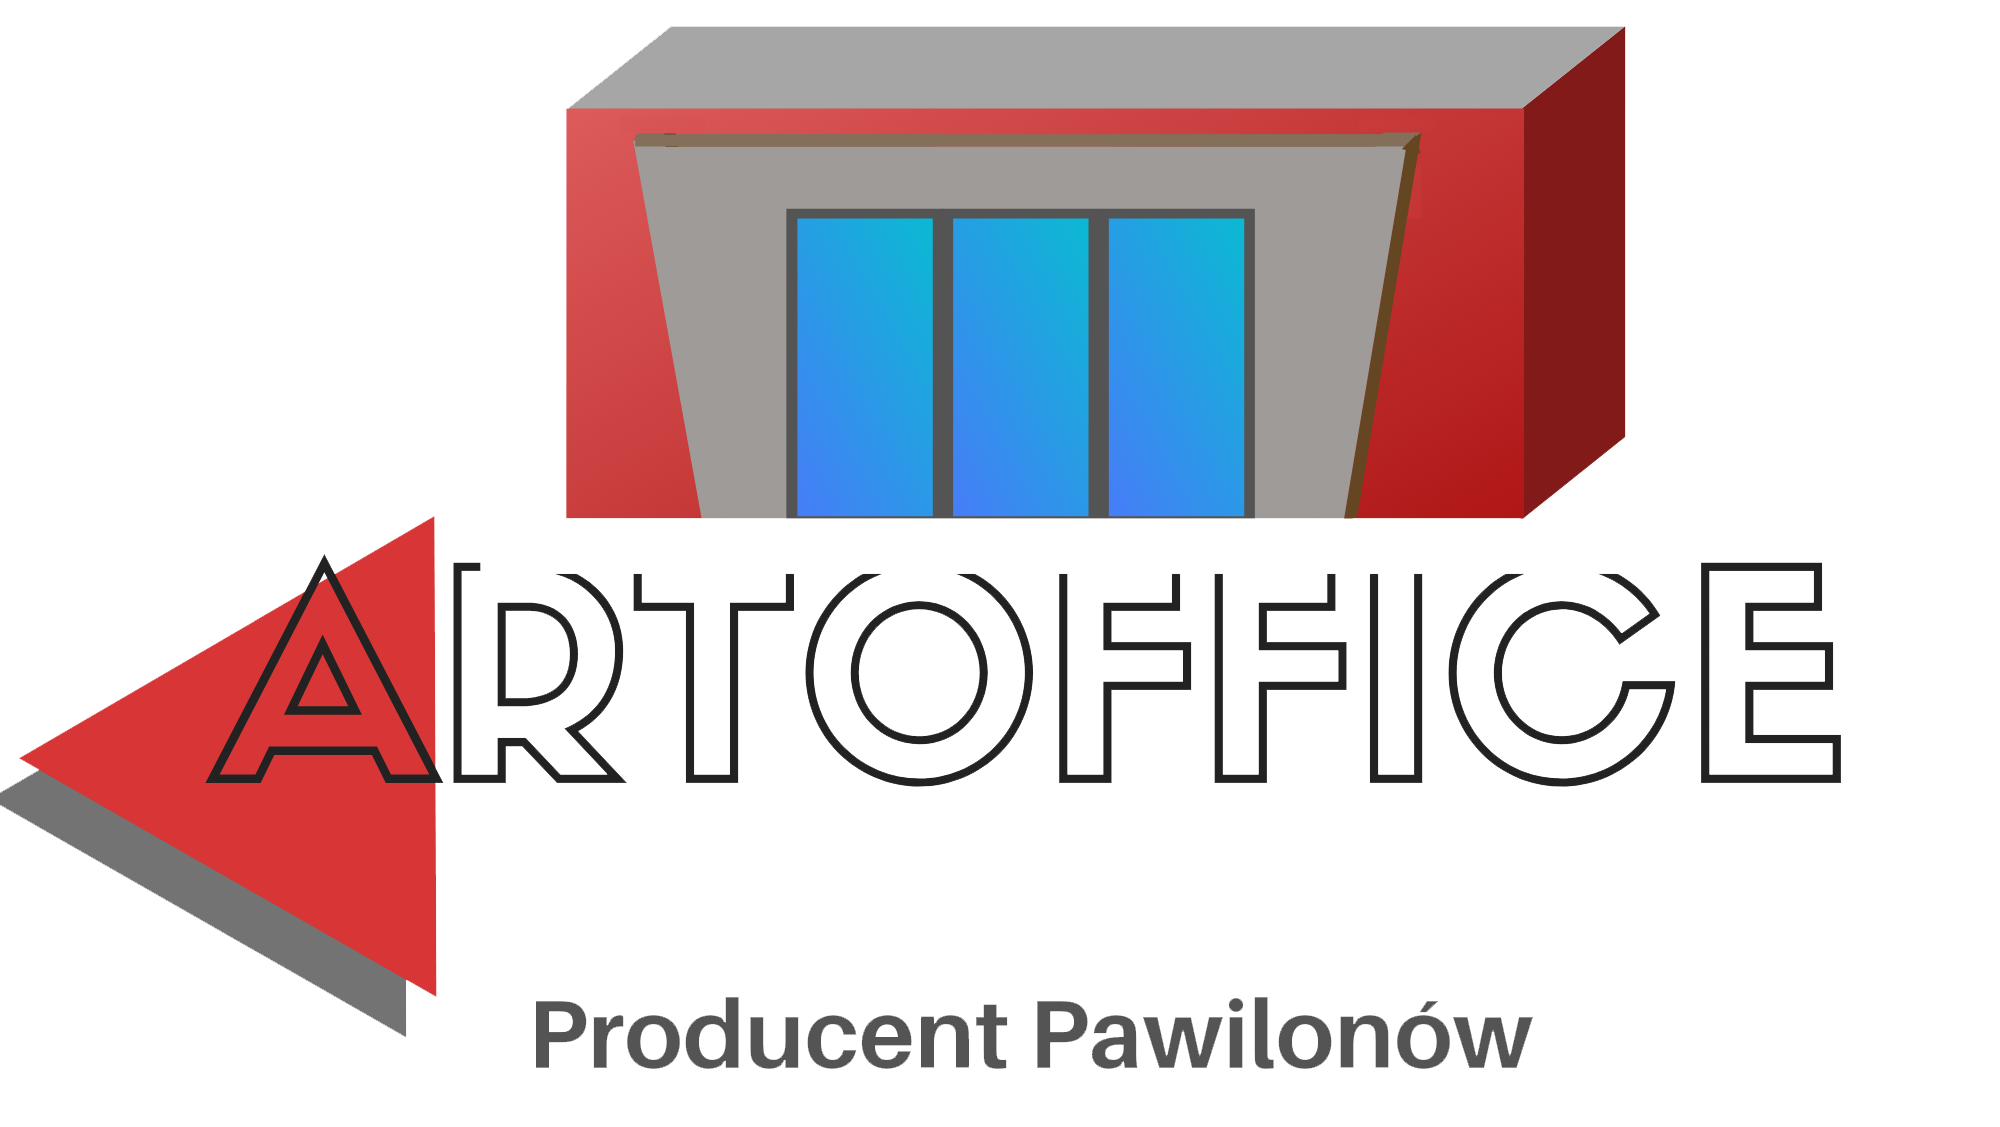 Pawilon-artoffice